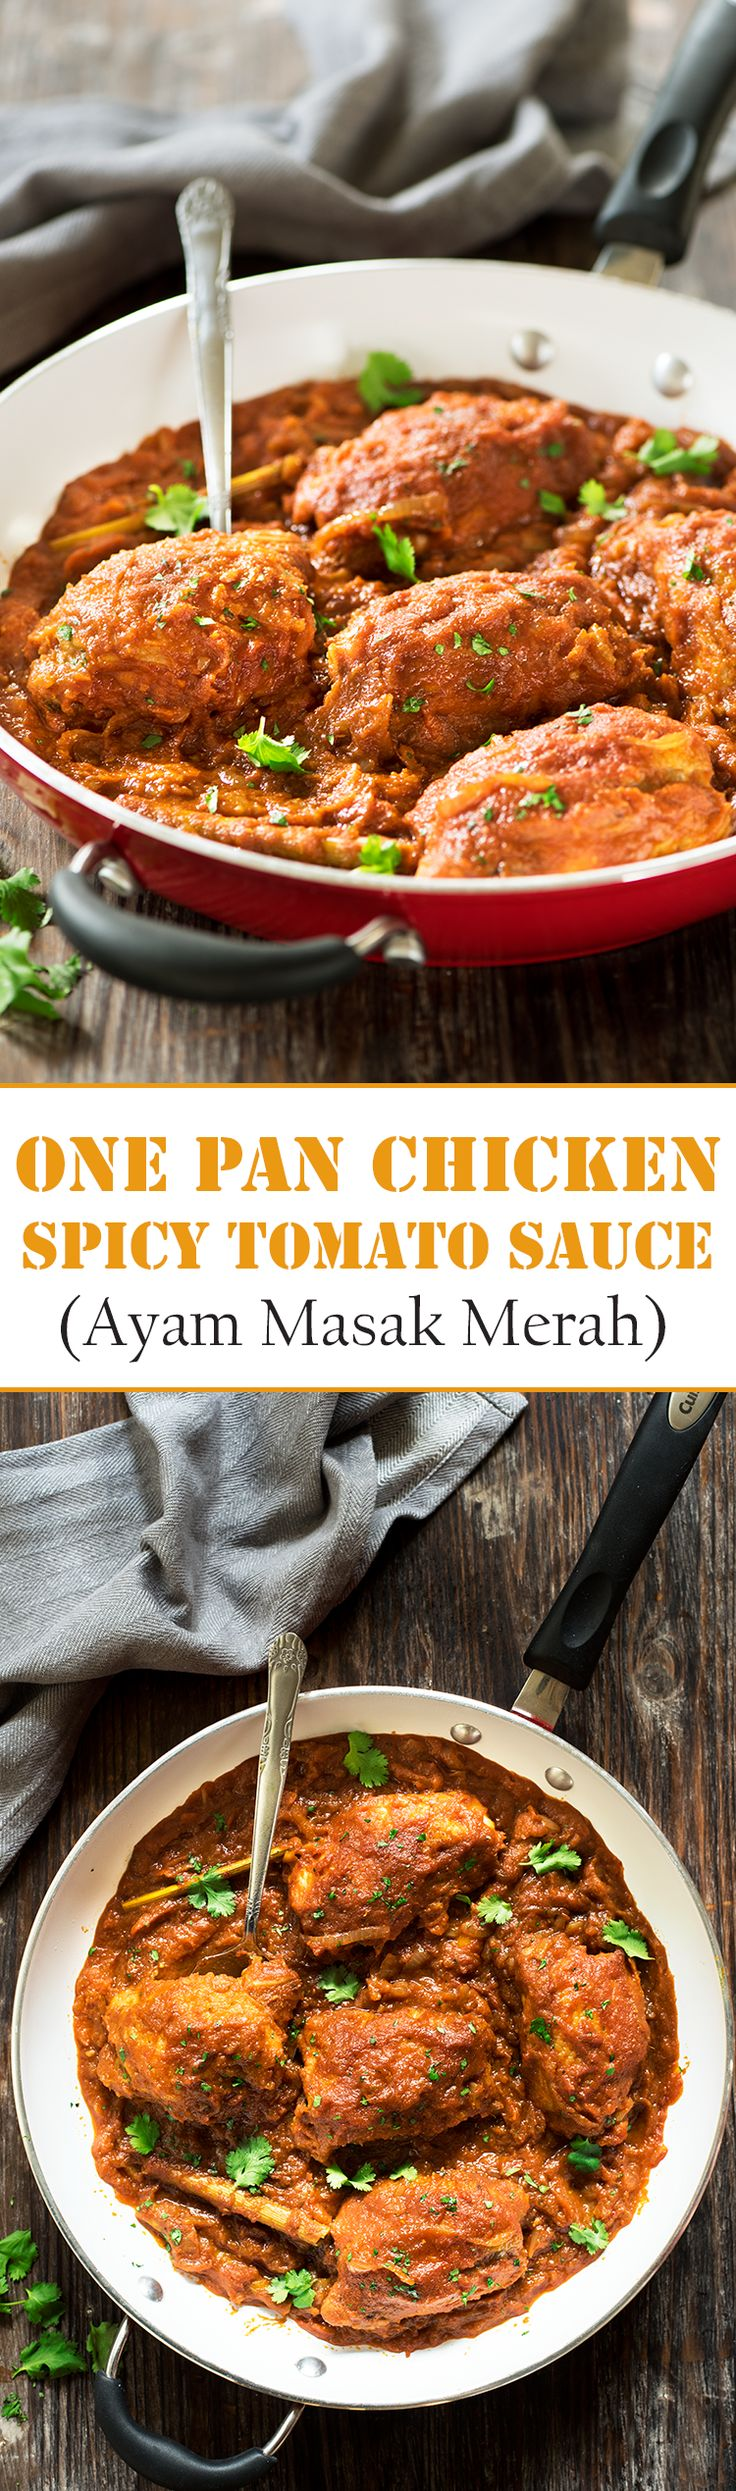 One Pan Chicken in Spicy Tomato Sauce (Ayam Masak Merah) - A classic Malay dish, chicken is seared & braised in a thick spicy, sweet sourish sauce made of a flavorful spice paste & tomato sauce. All in one pan!